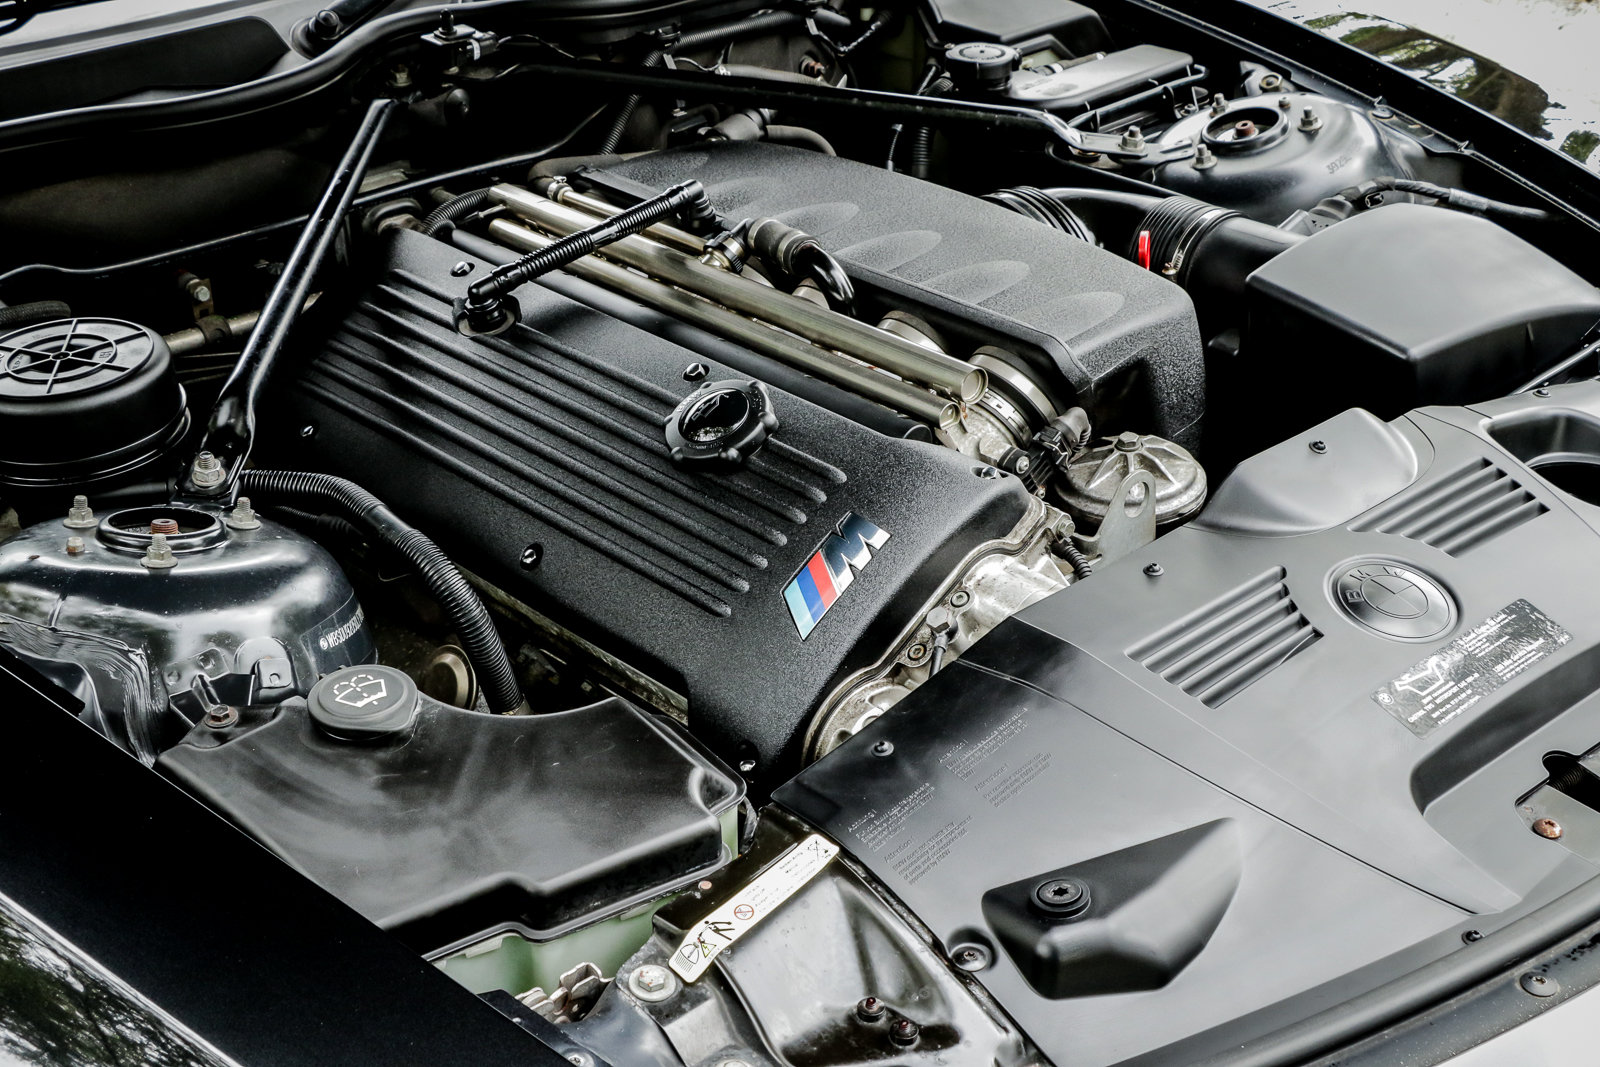 2006 BMW Z4M Coupe Sapphire Black with Inspection II Service For Sale (picture 6 of 6)